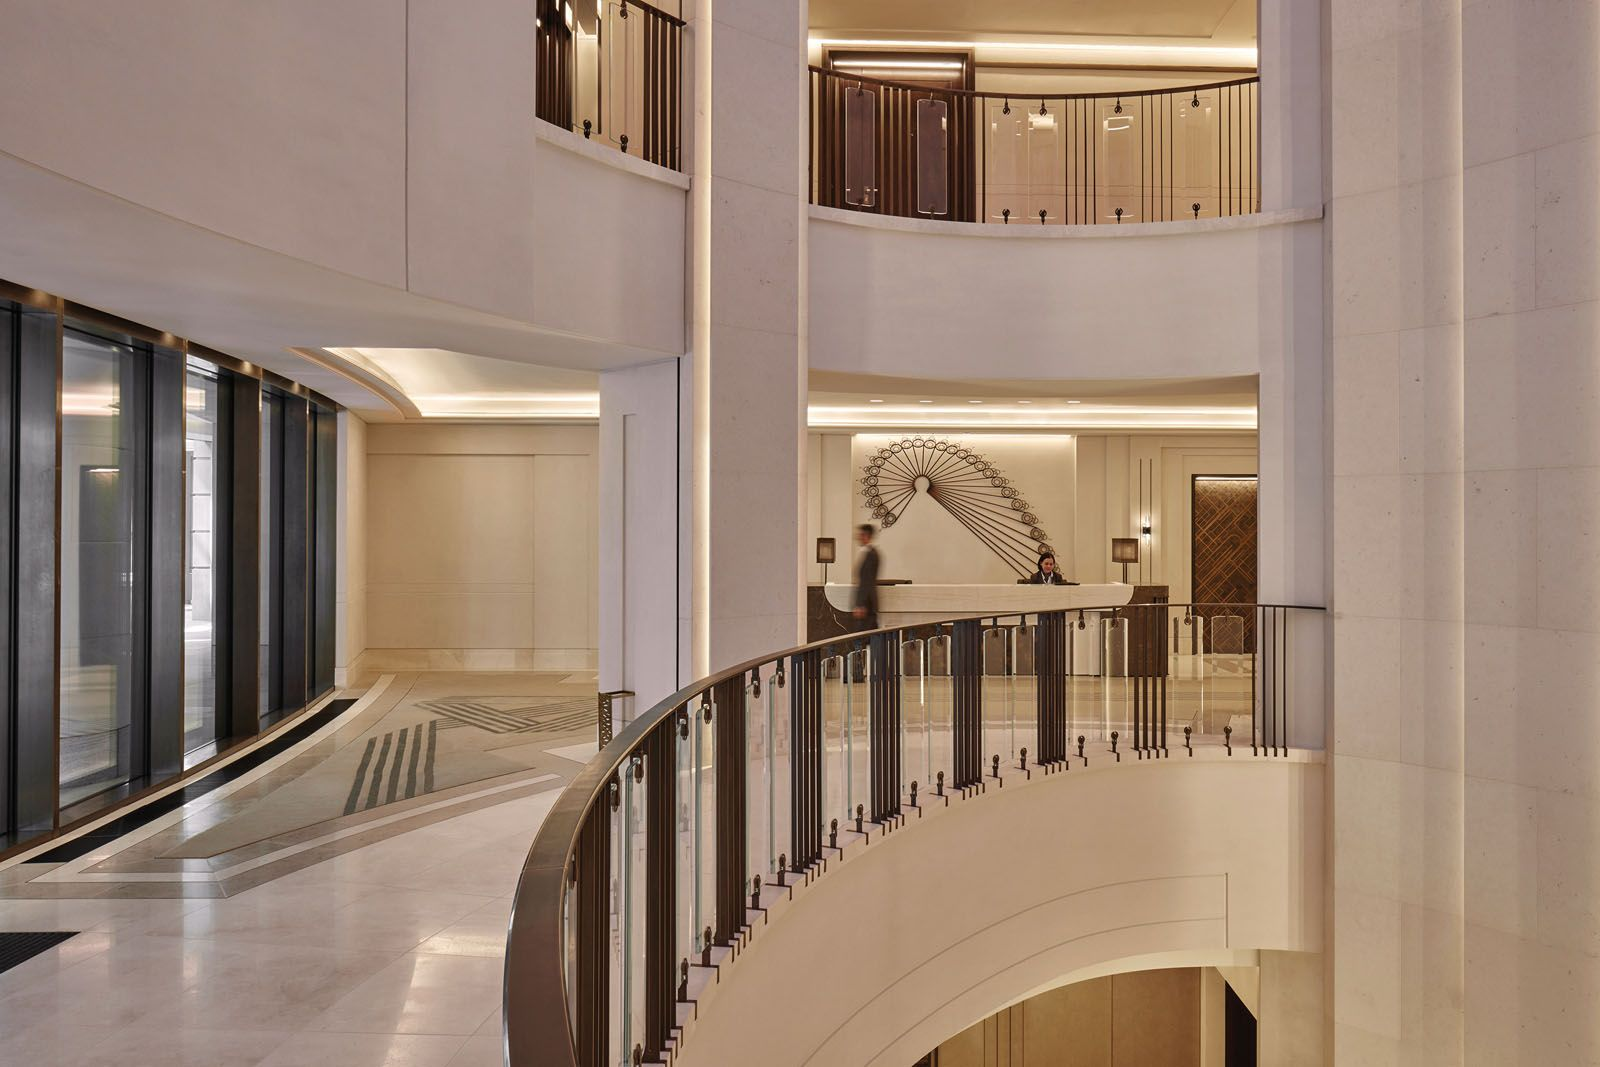 The soaring atrium provides an elegant backdrop in which to arrive